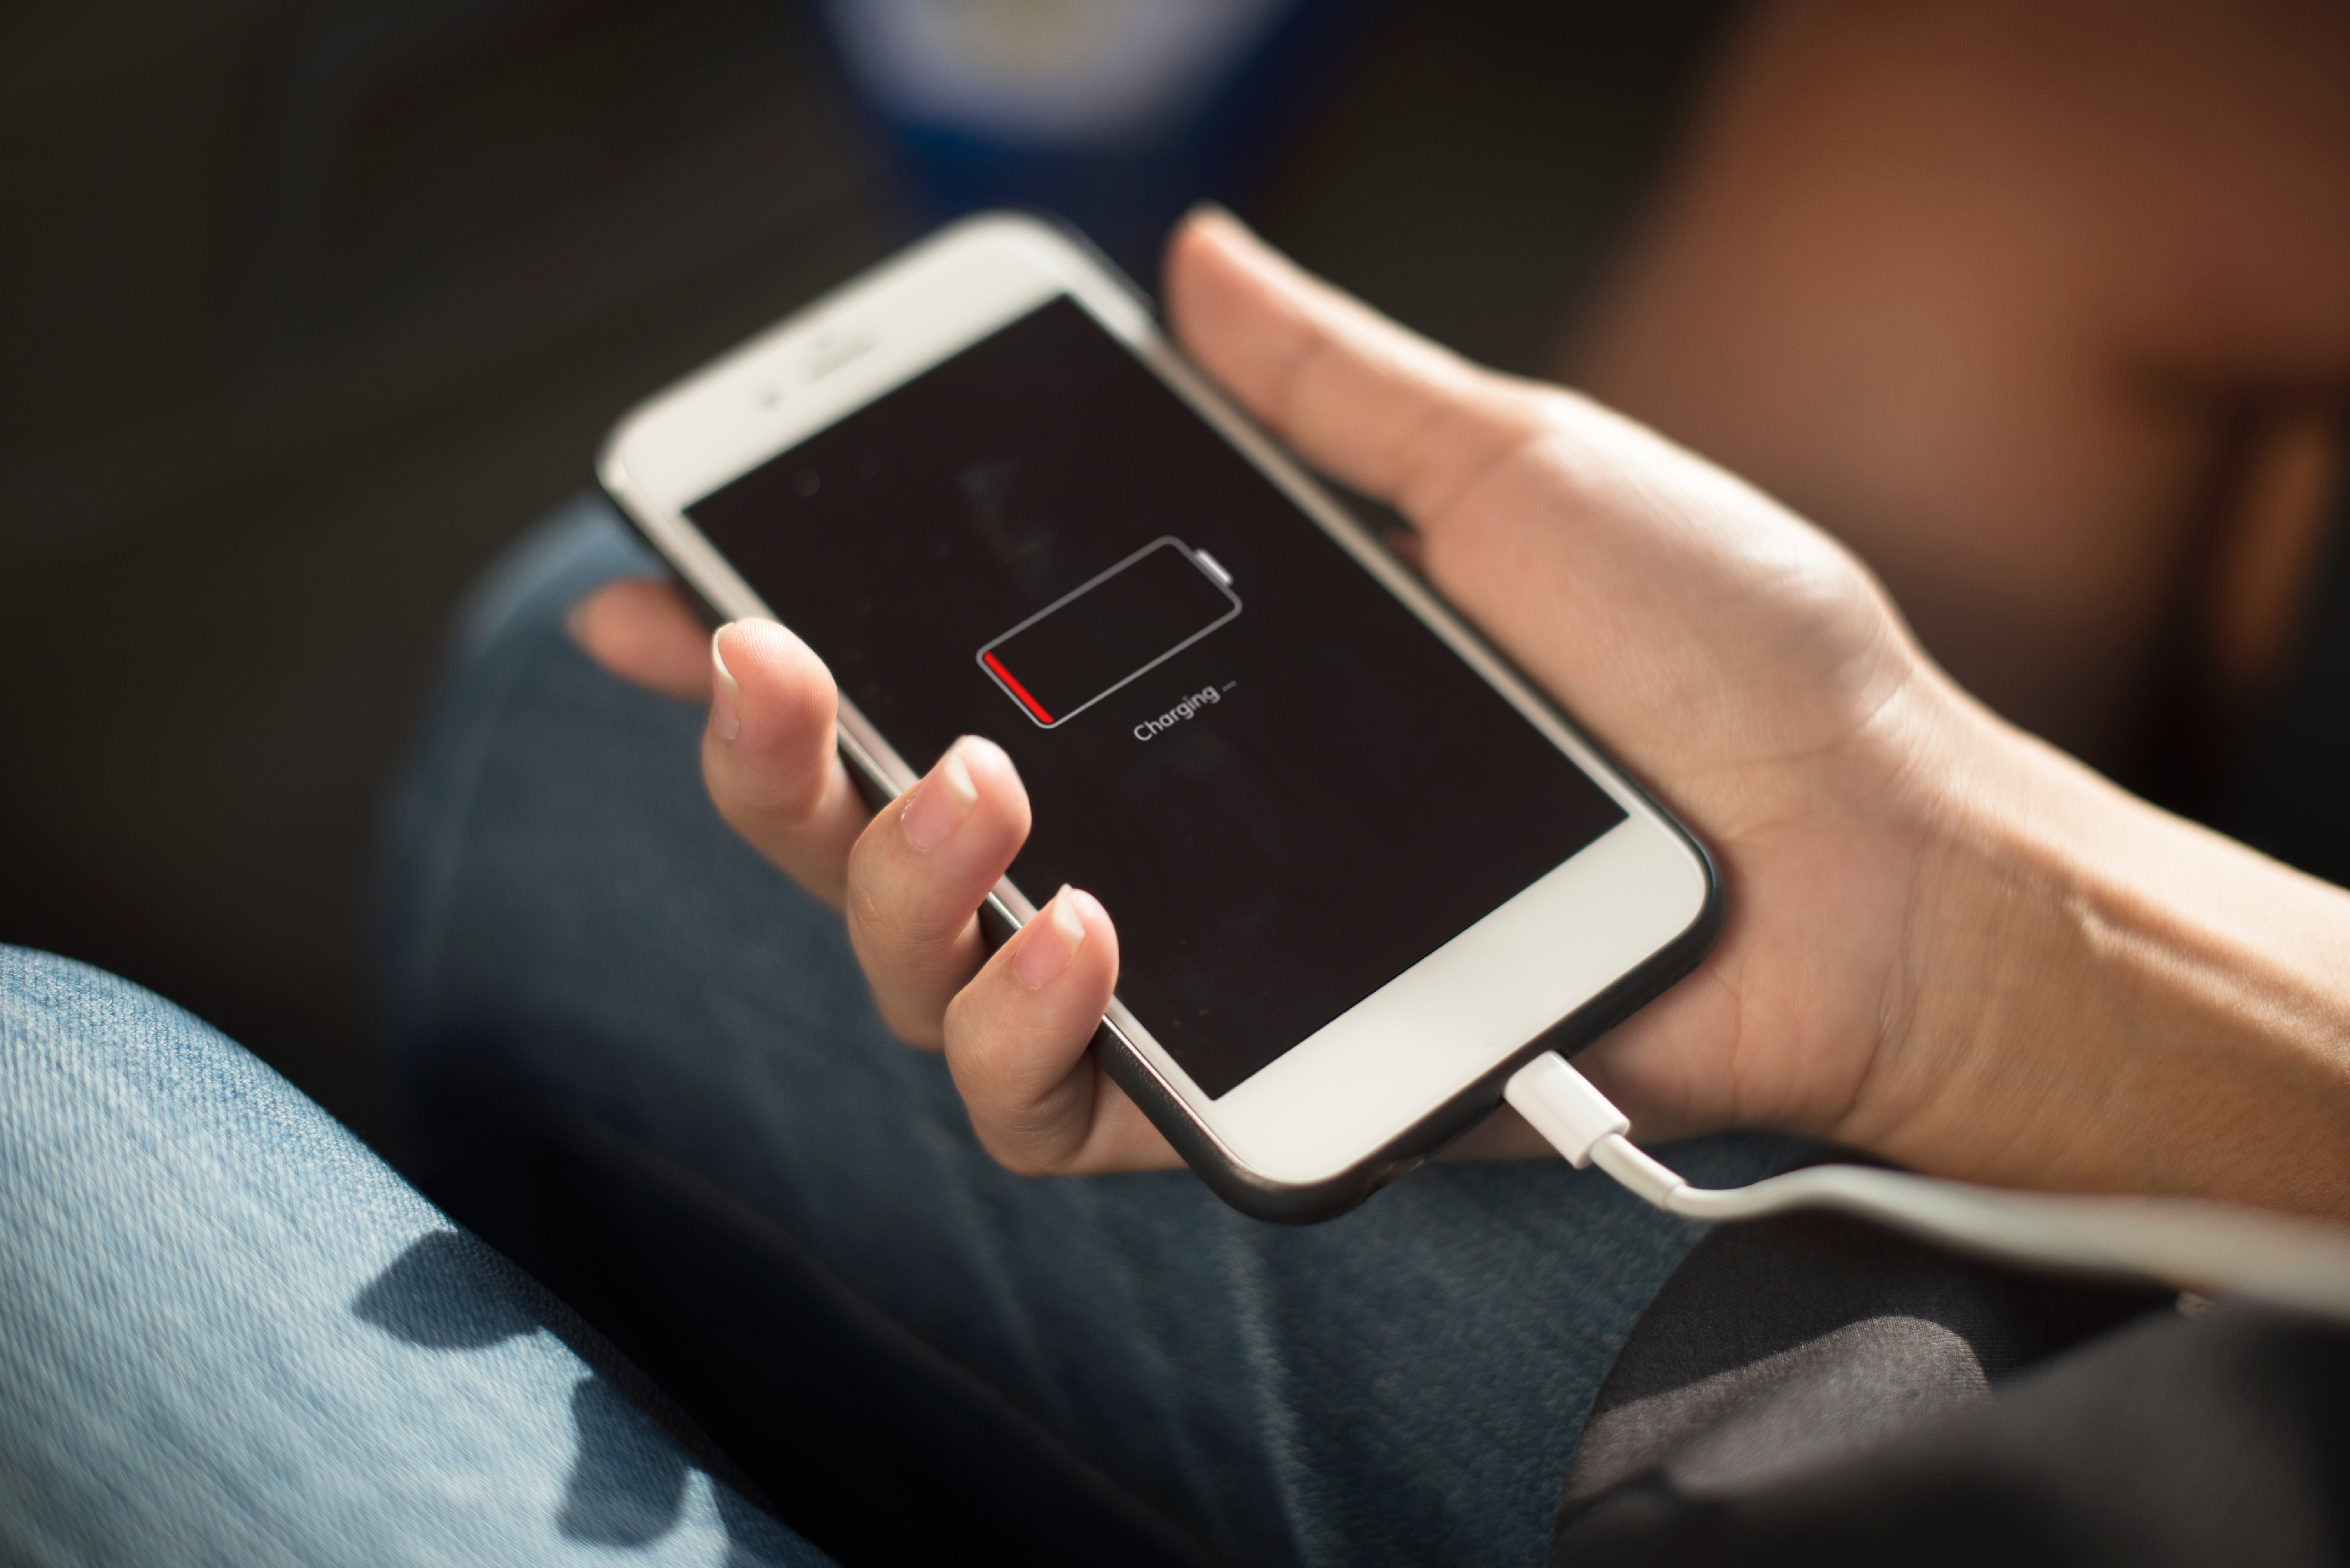 Using Smart phone during charge Is safe or not???